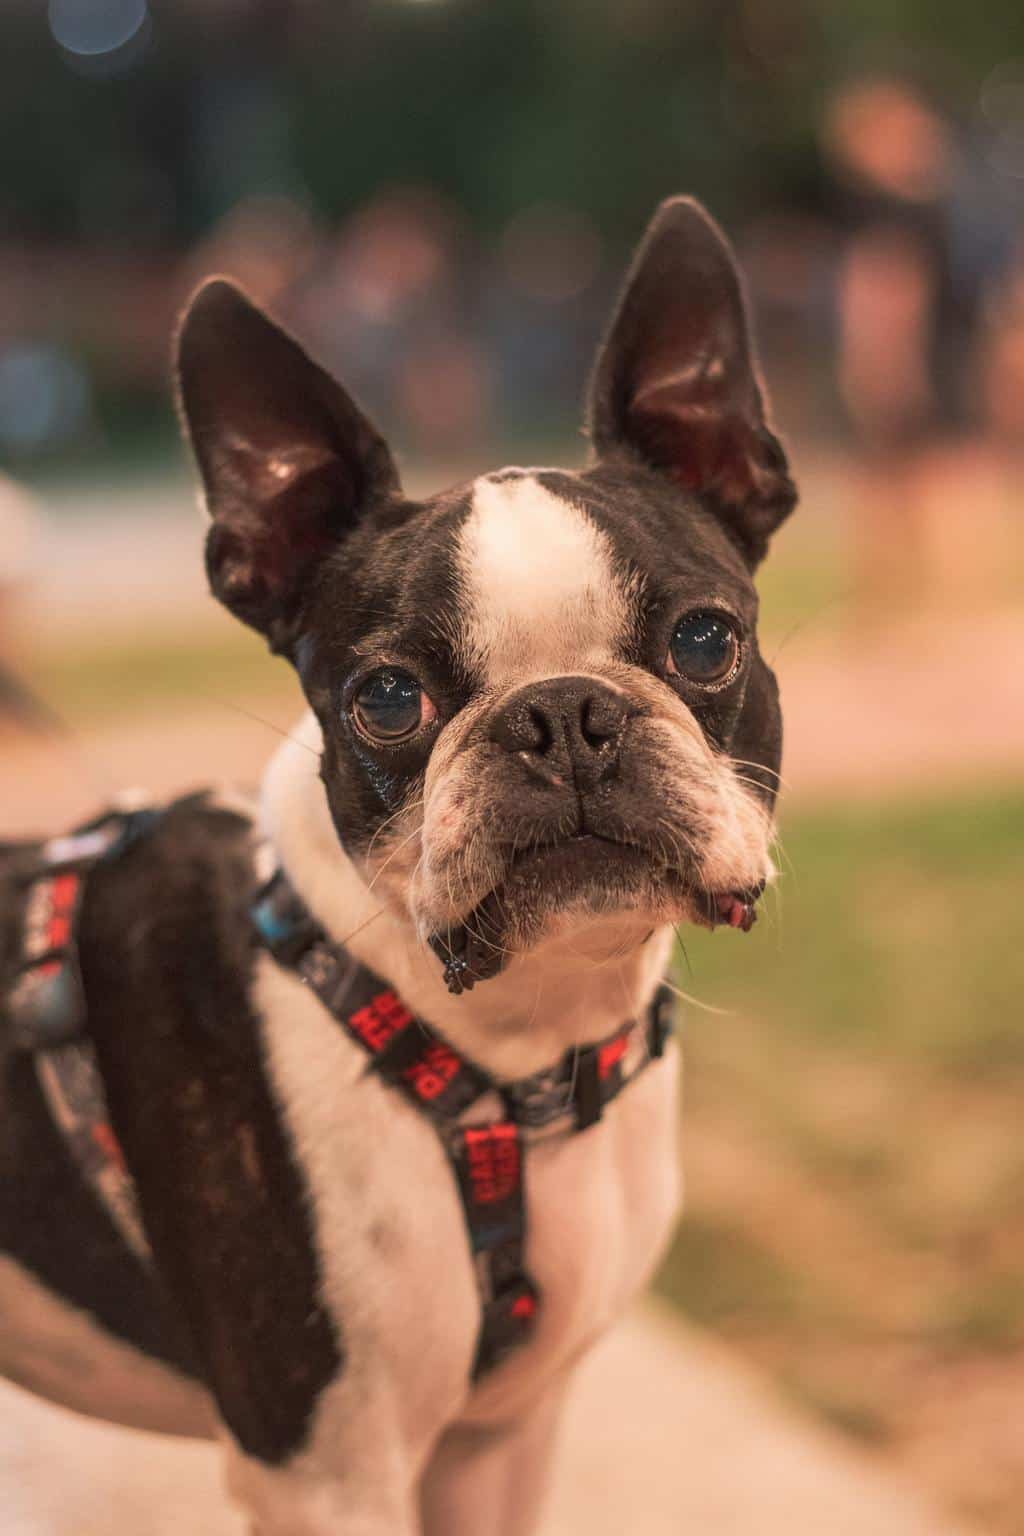 Boston terrier wearing a harness outdoors